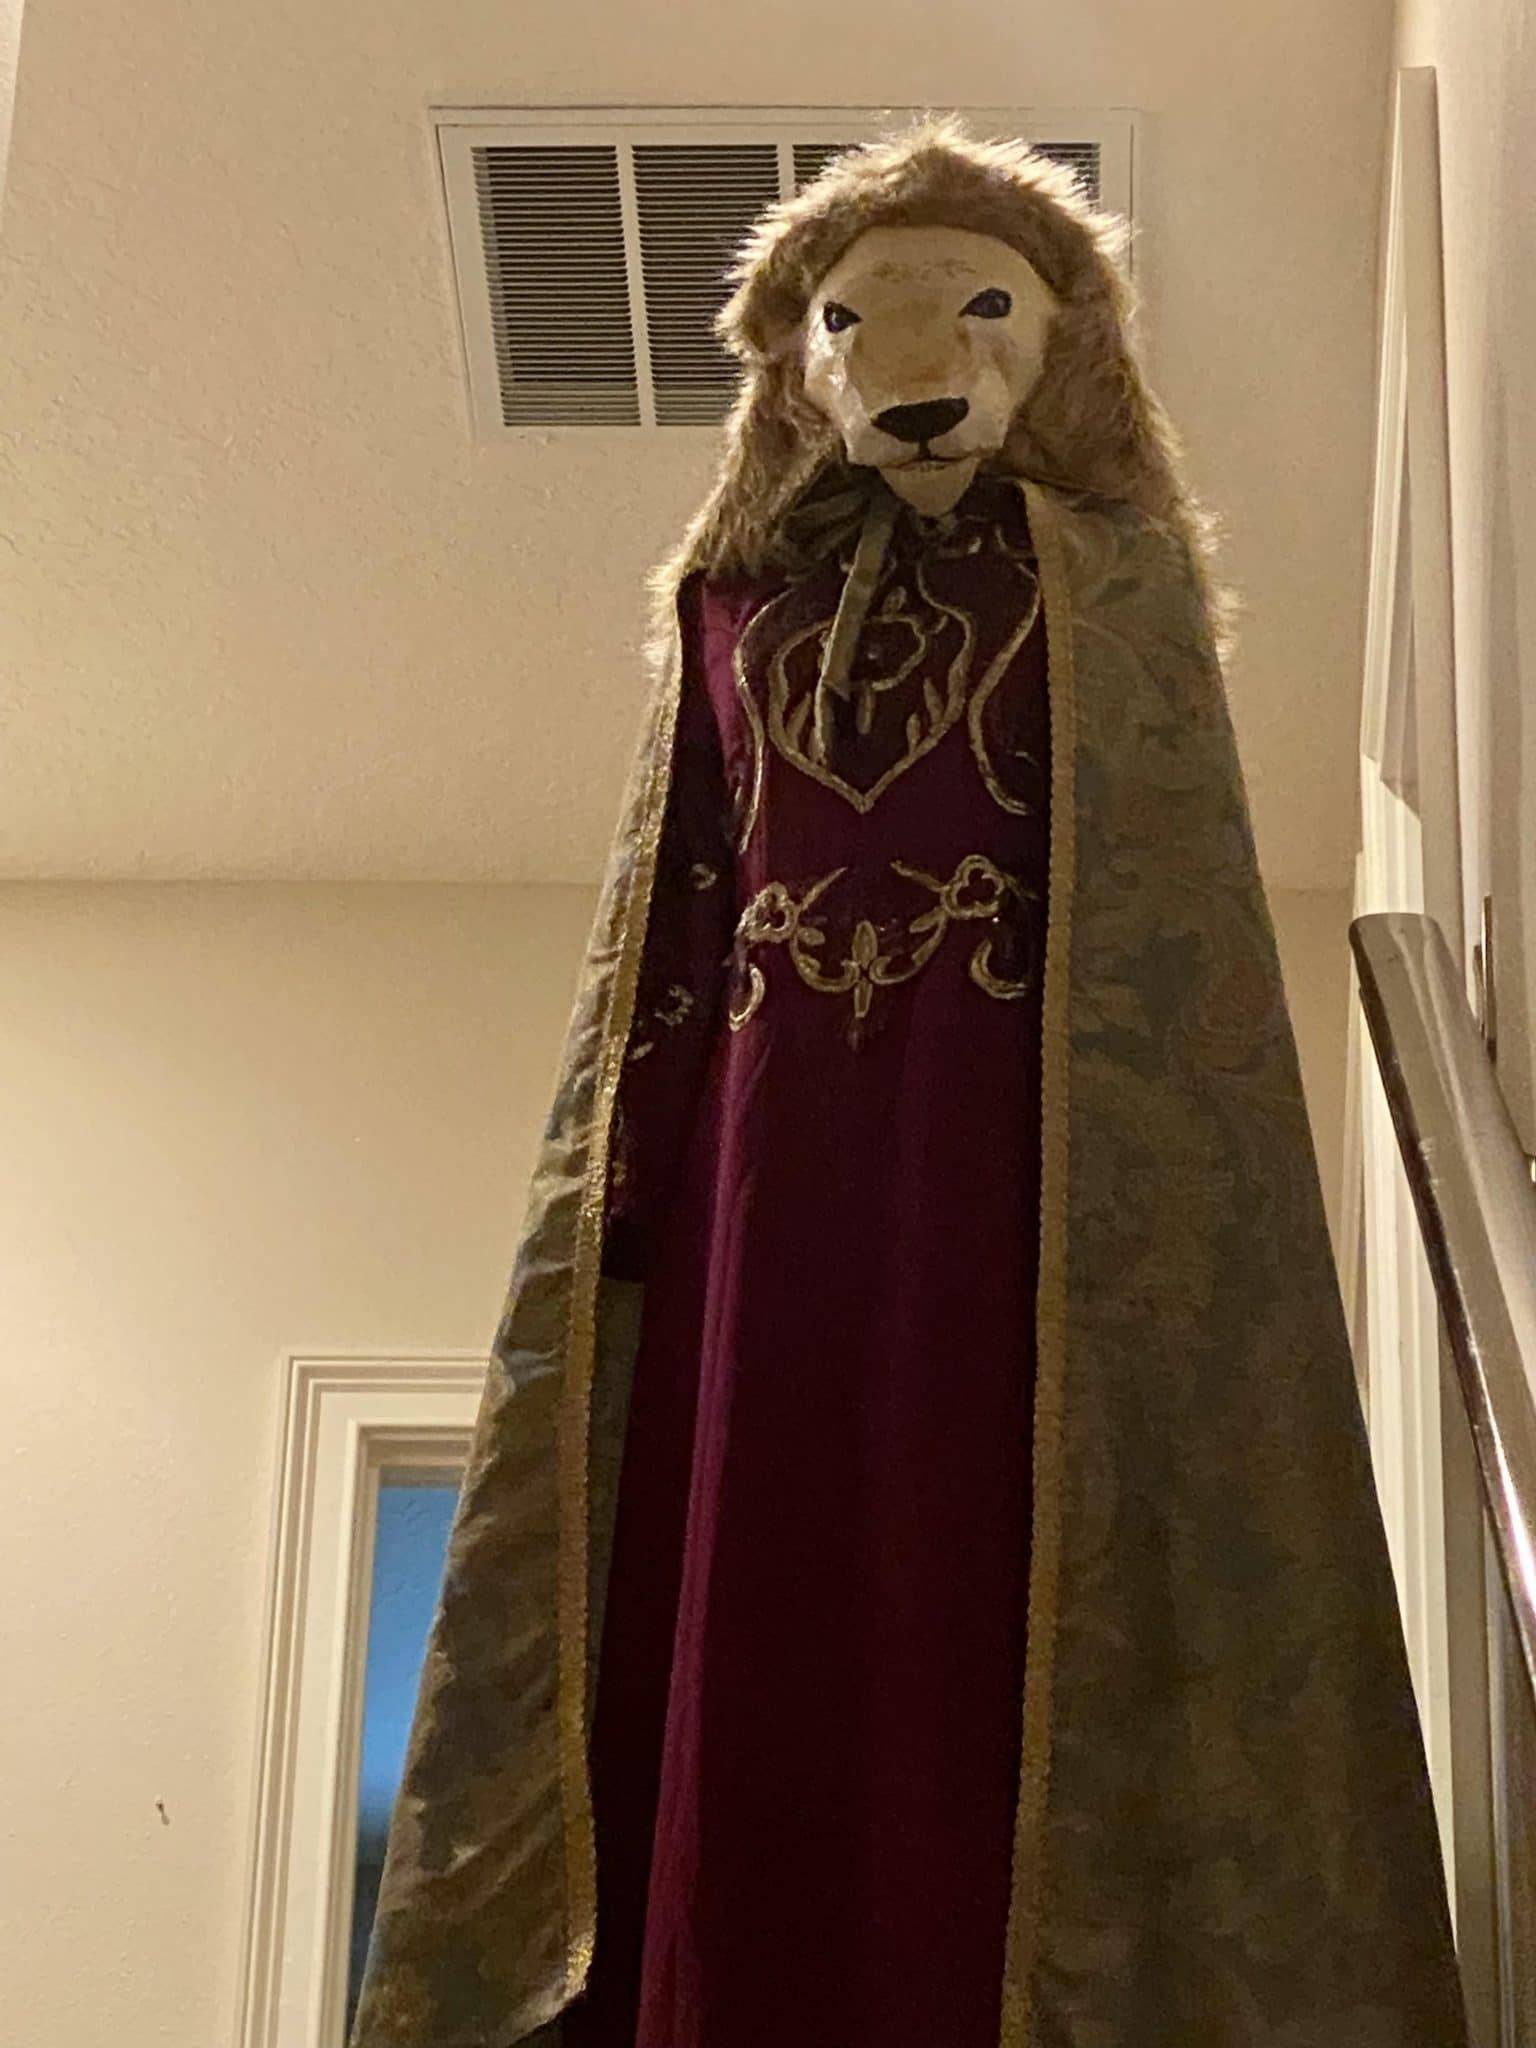 Paper mache mask for the Lion the Witch and the Wardrobe